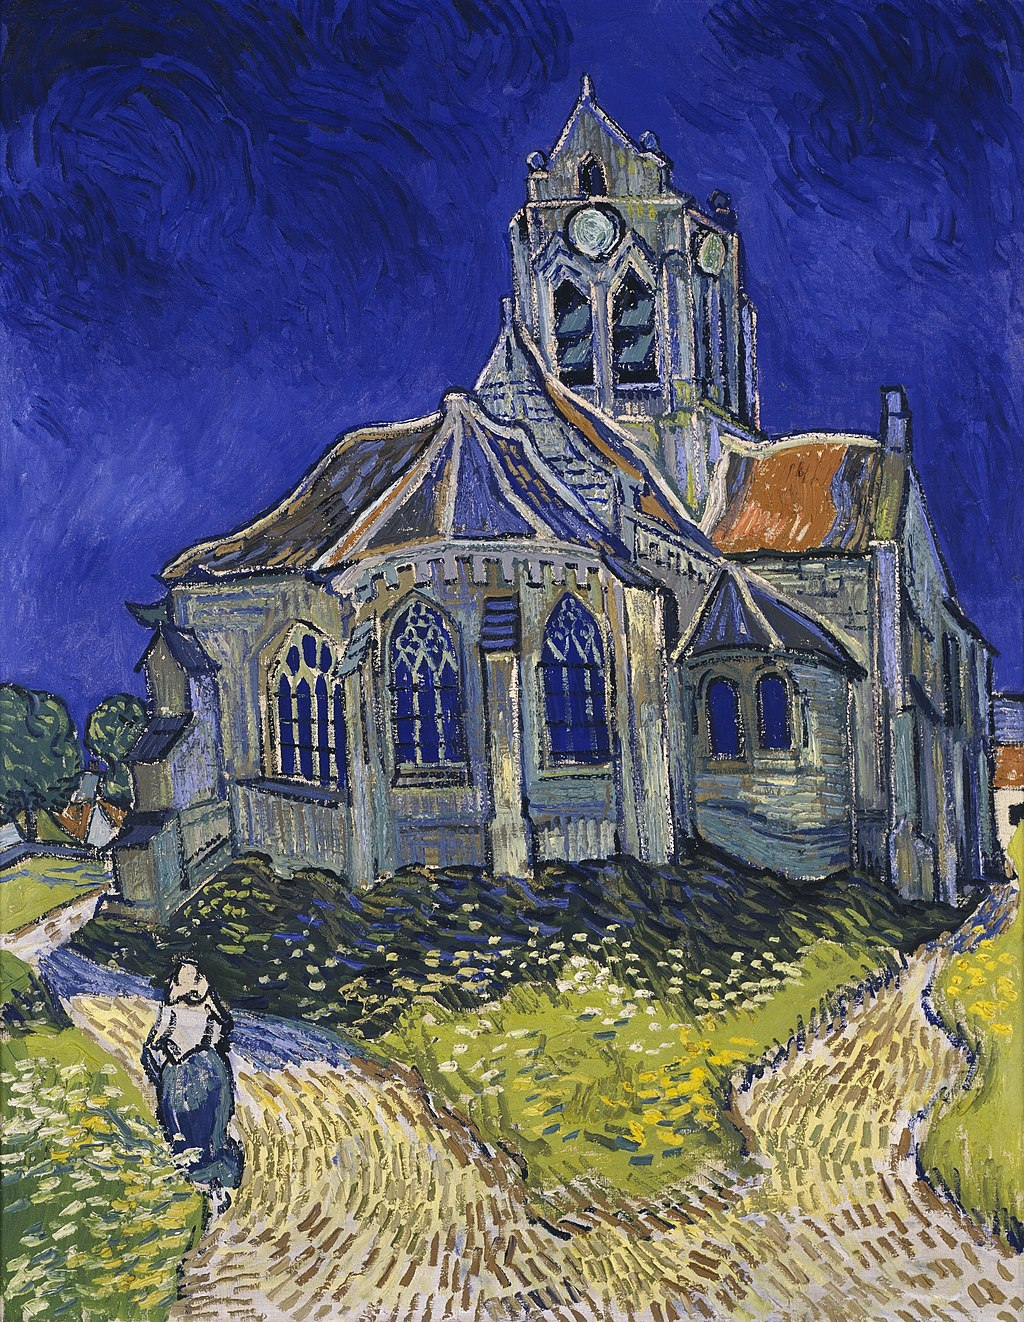 Vincent van Gogh - The Church in Auvers-sur-Oise, View from the Chevet - Google Art Project